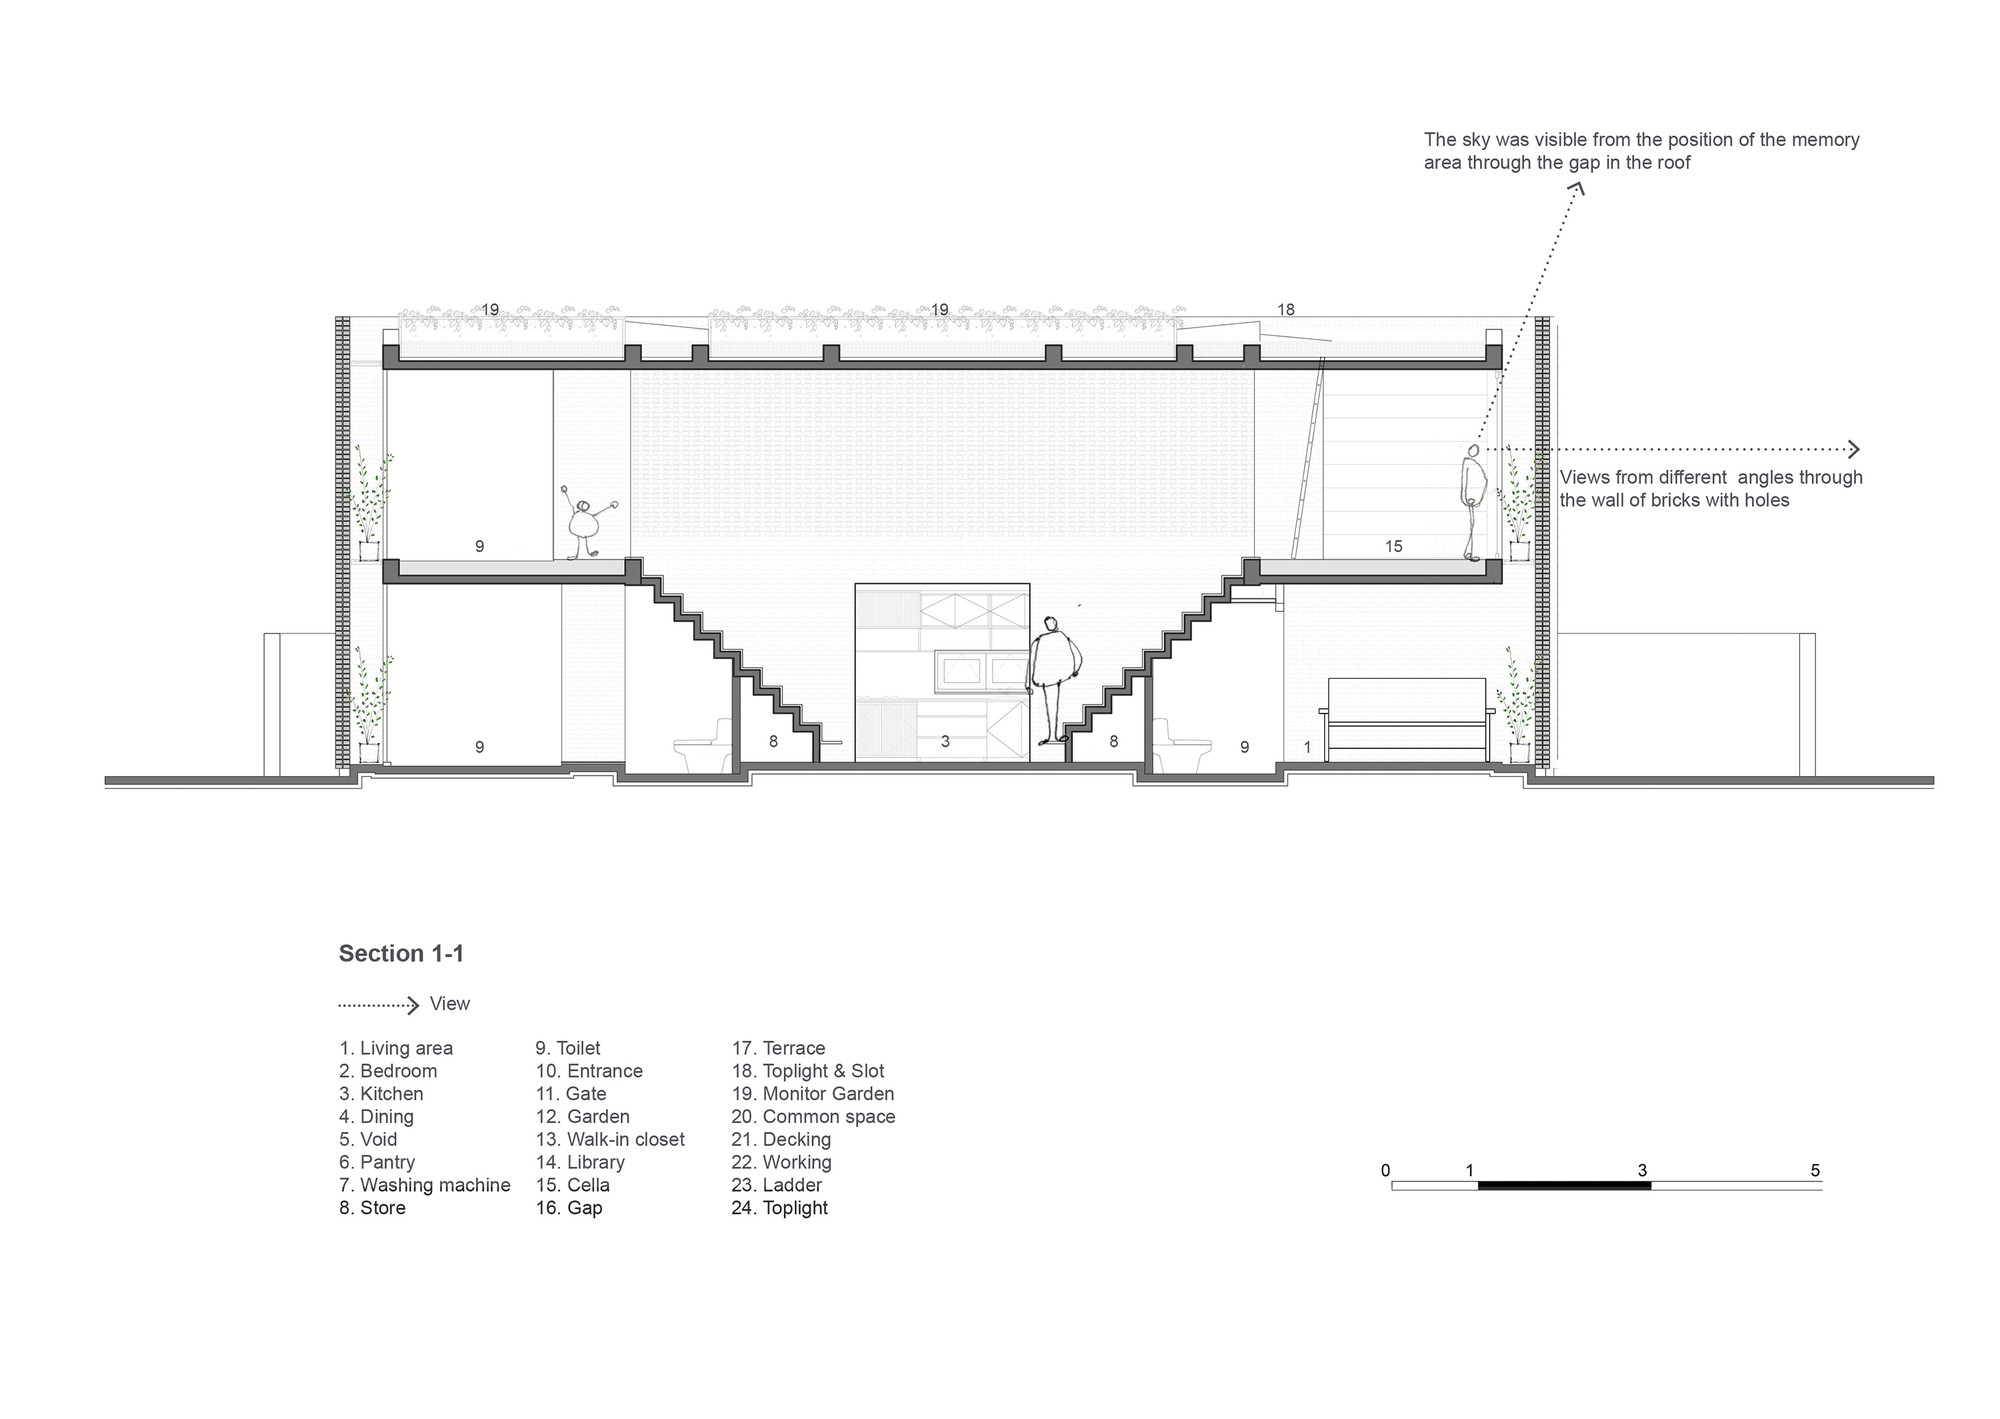 54d0649de58ece5c5e0004a9 Section 1 1 on Floor Plan Drawing